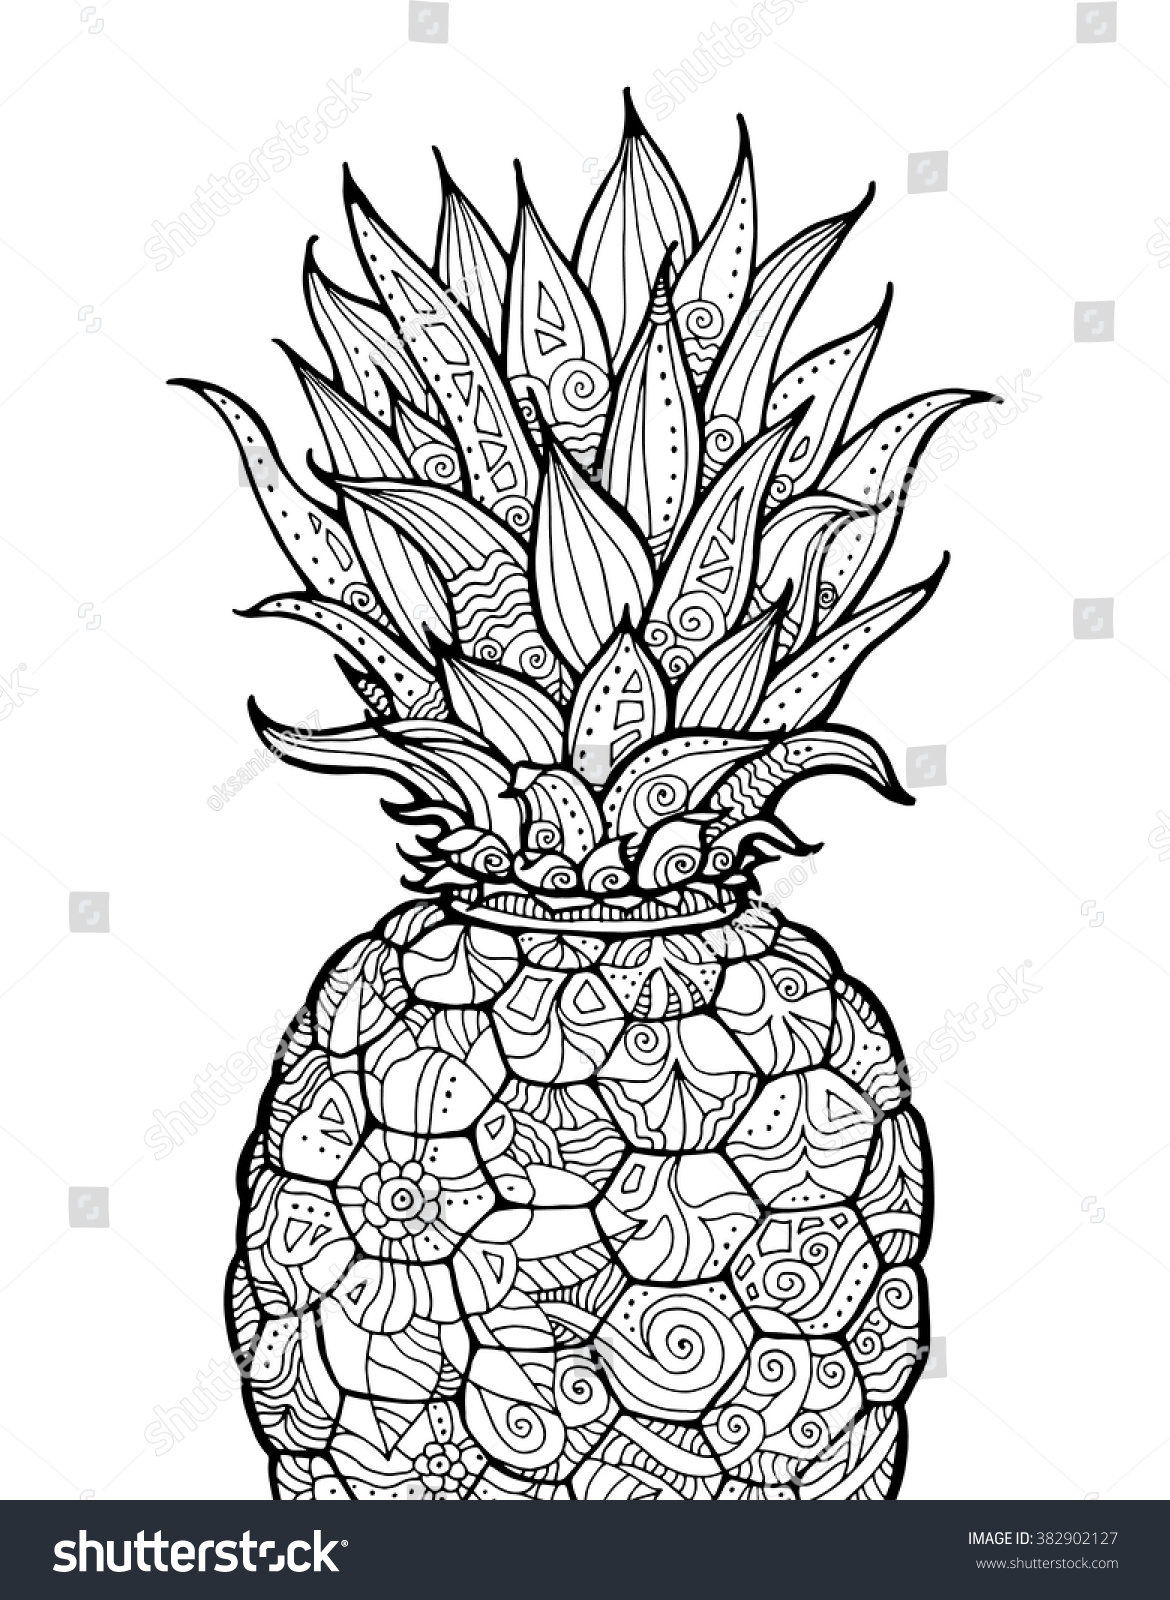 Ananas pineapple exotic fruit with floral pattern vector coloring book page for adult zentangle hand drawn artwork summer concept for party card